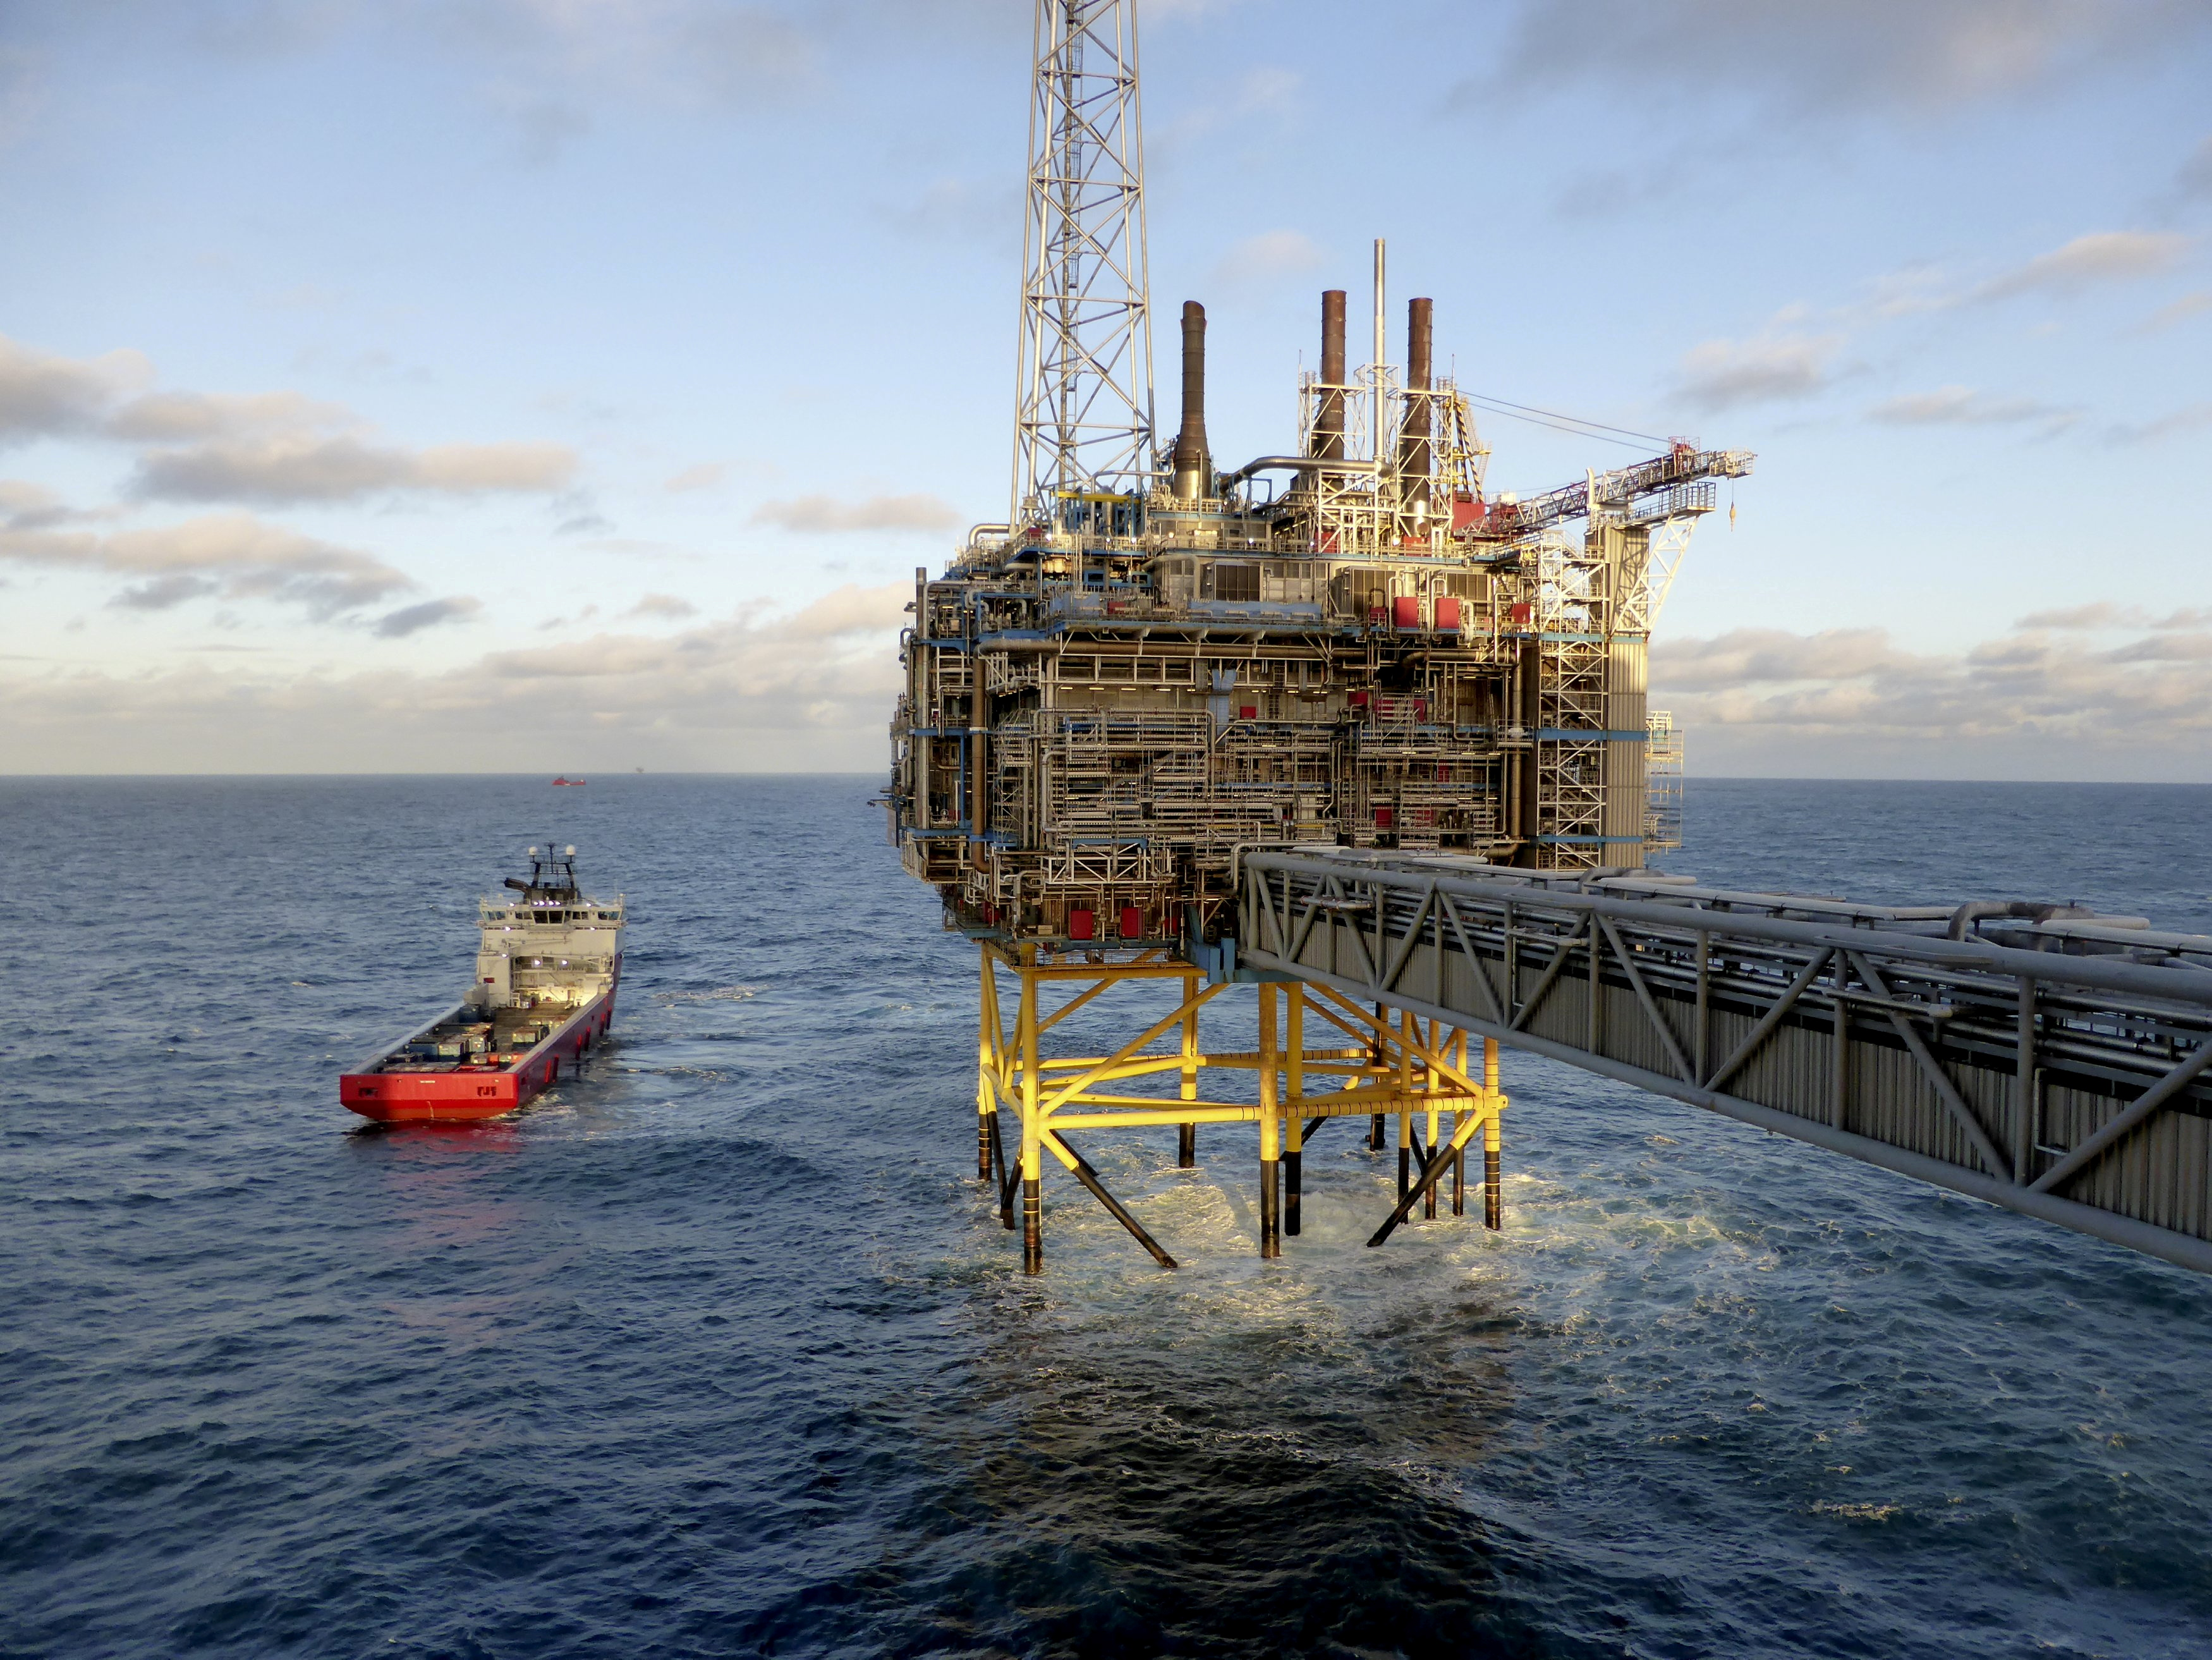 Oil and gas company Statoil gas processing and CO2 removal platform Sleipner T is pictured in the offshore near the Stavanger, Norway, February 11, 2016.  REUTERS/Nerijus Adomaitis/File Photo